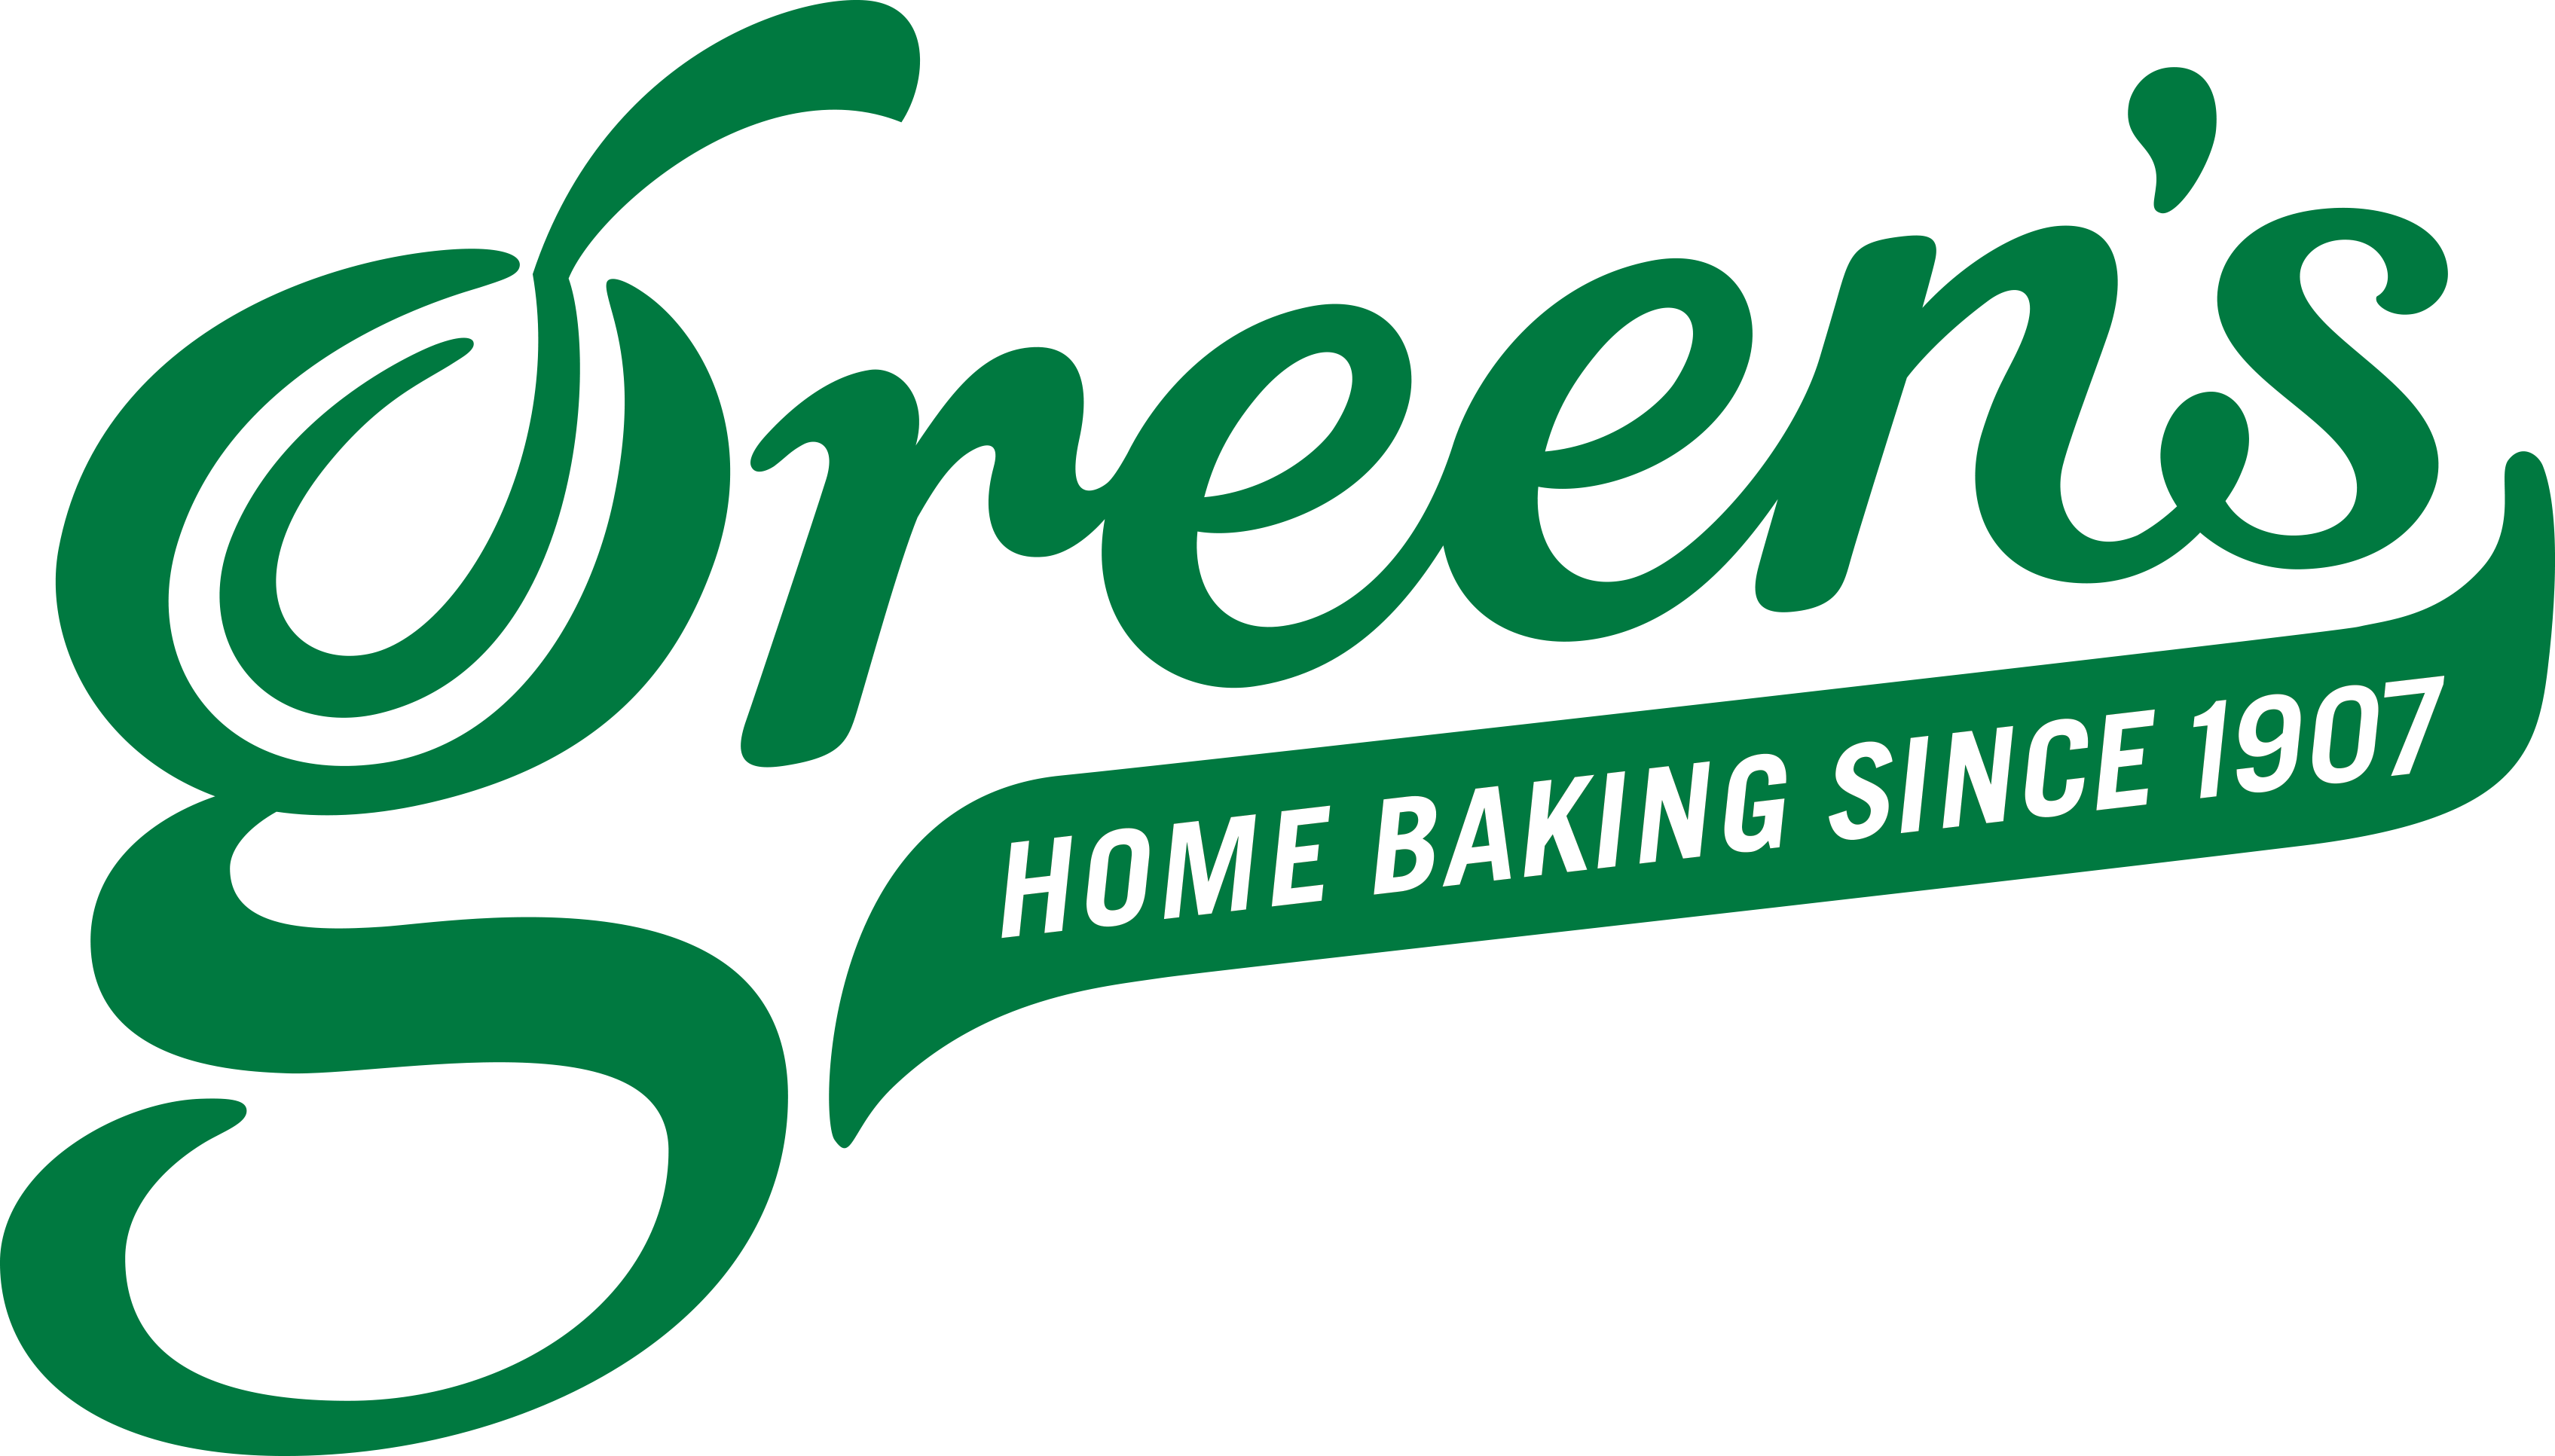 Greens Cakes